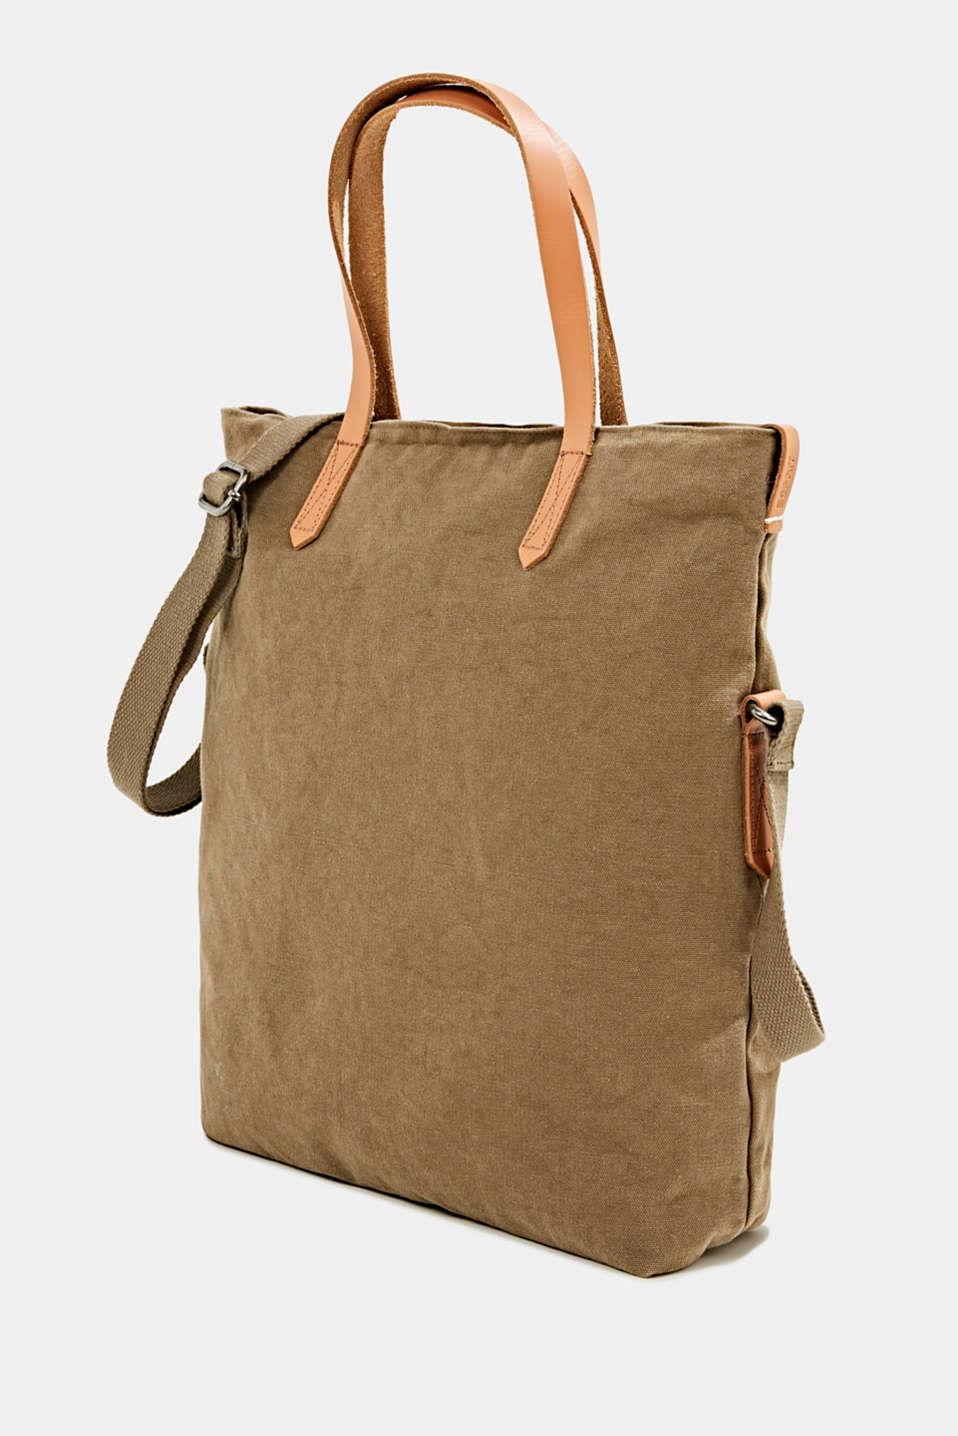 Adjustable canvas tote with leather details, LIGHT KHAKI, detail image number 2